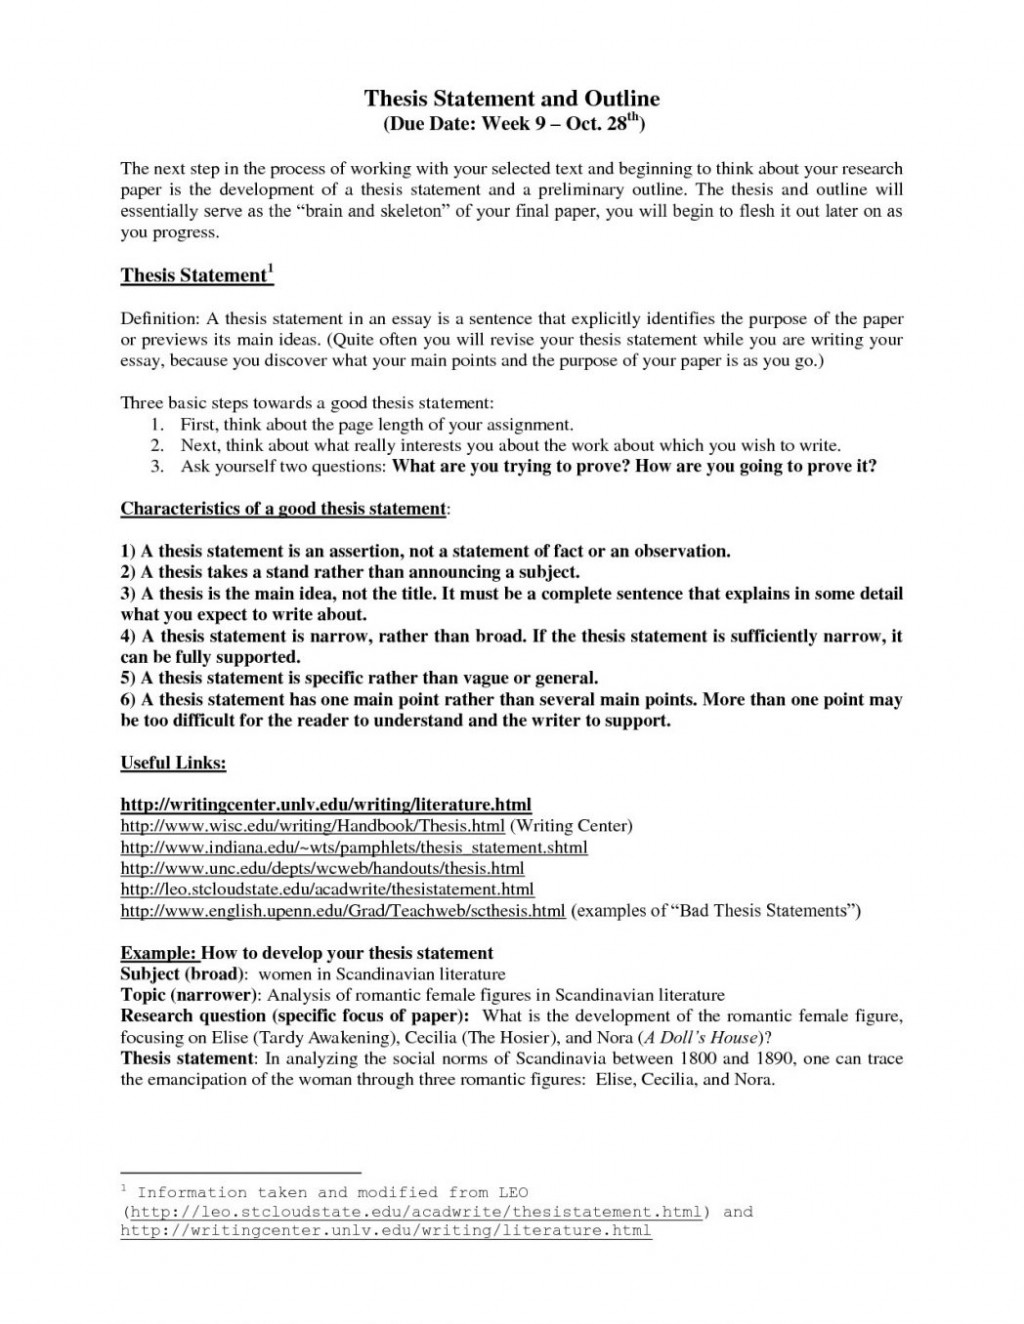 020 Thesis Statementamples For Essays Cute Easy Pics Your Argumentative Writing Good Persuasive Essay H Compare Contrast How To Write An Informativeample Of Do You Impressive Statement Examples Analysis Response Papers About Yourself Large